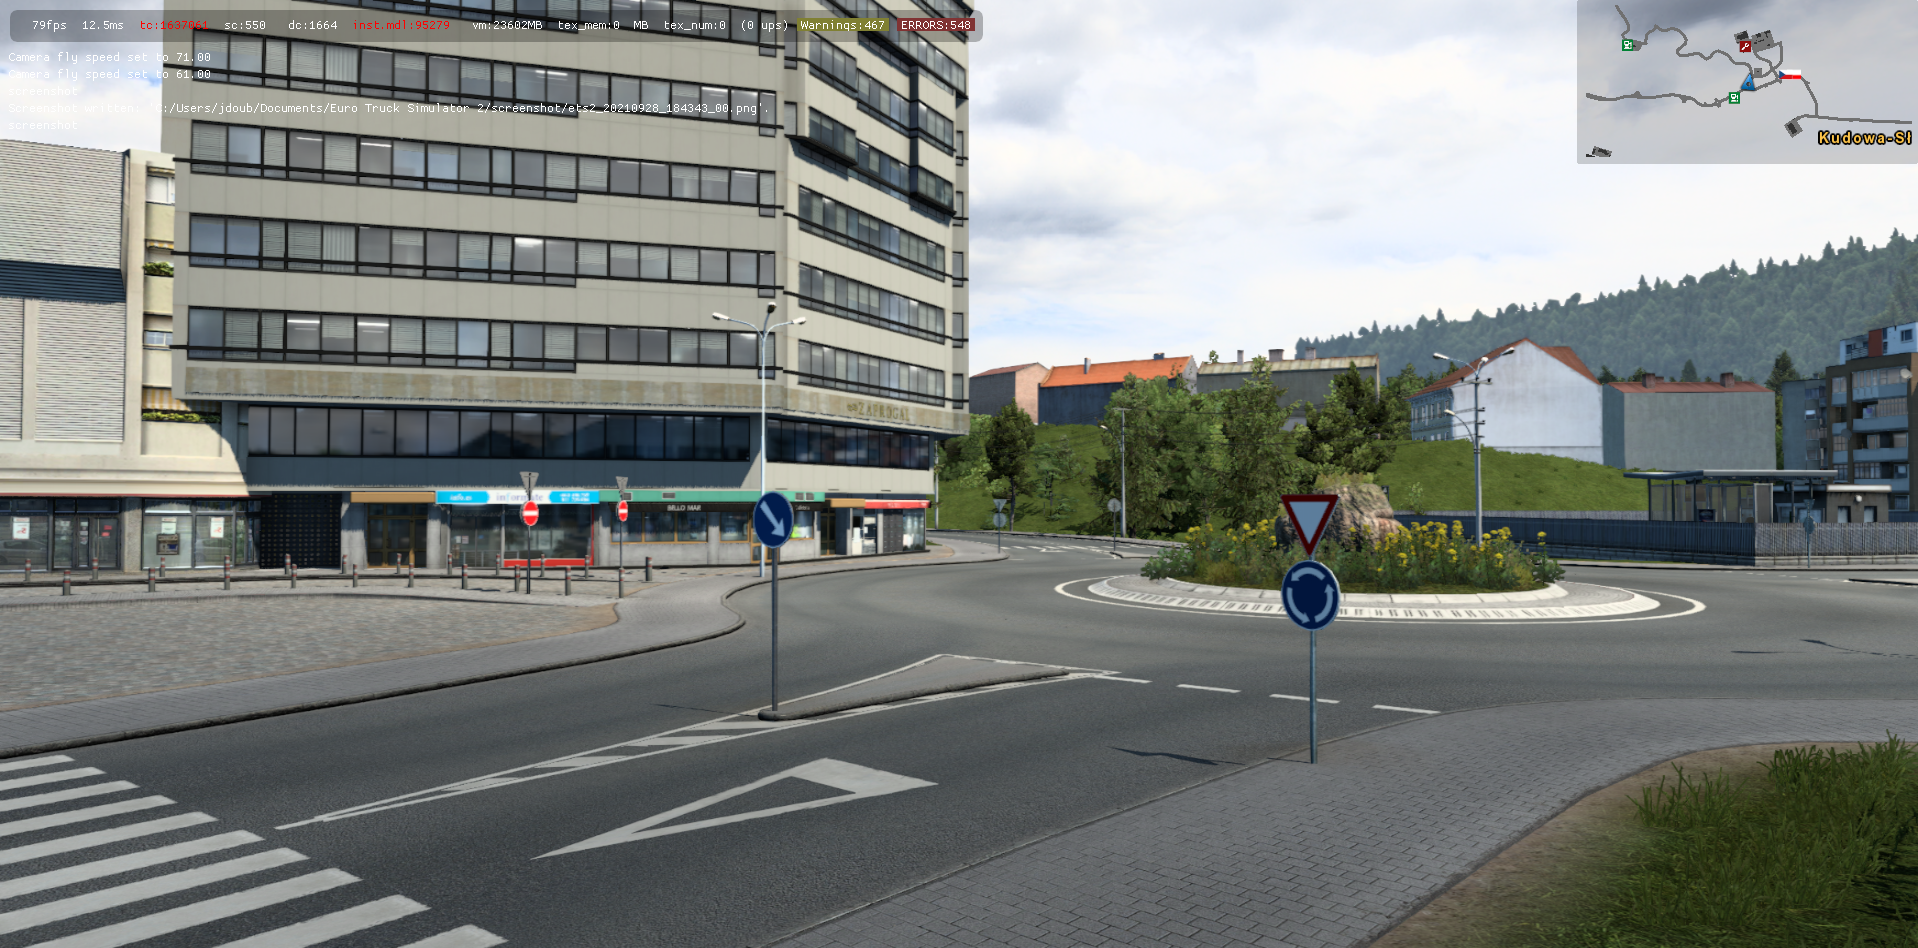 ets2_20210928_184349_00.png